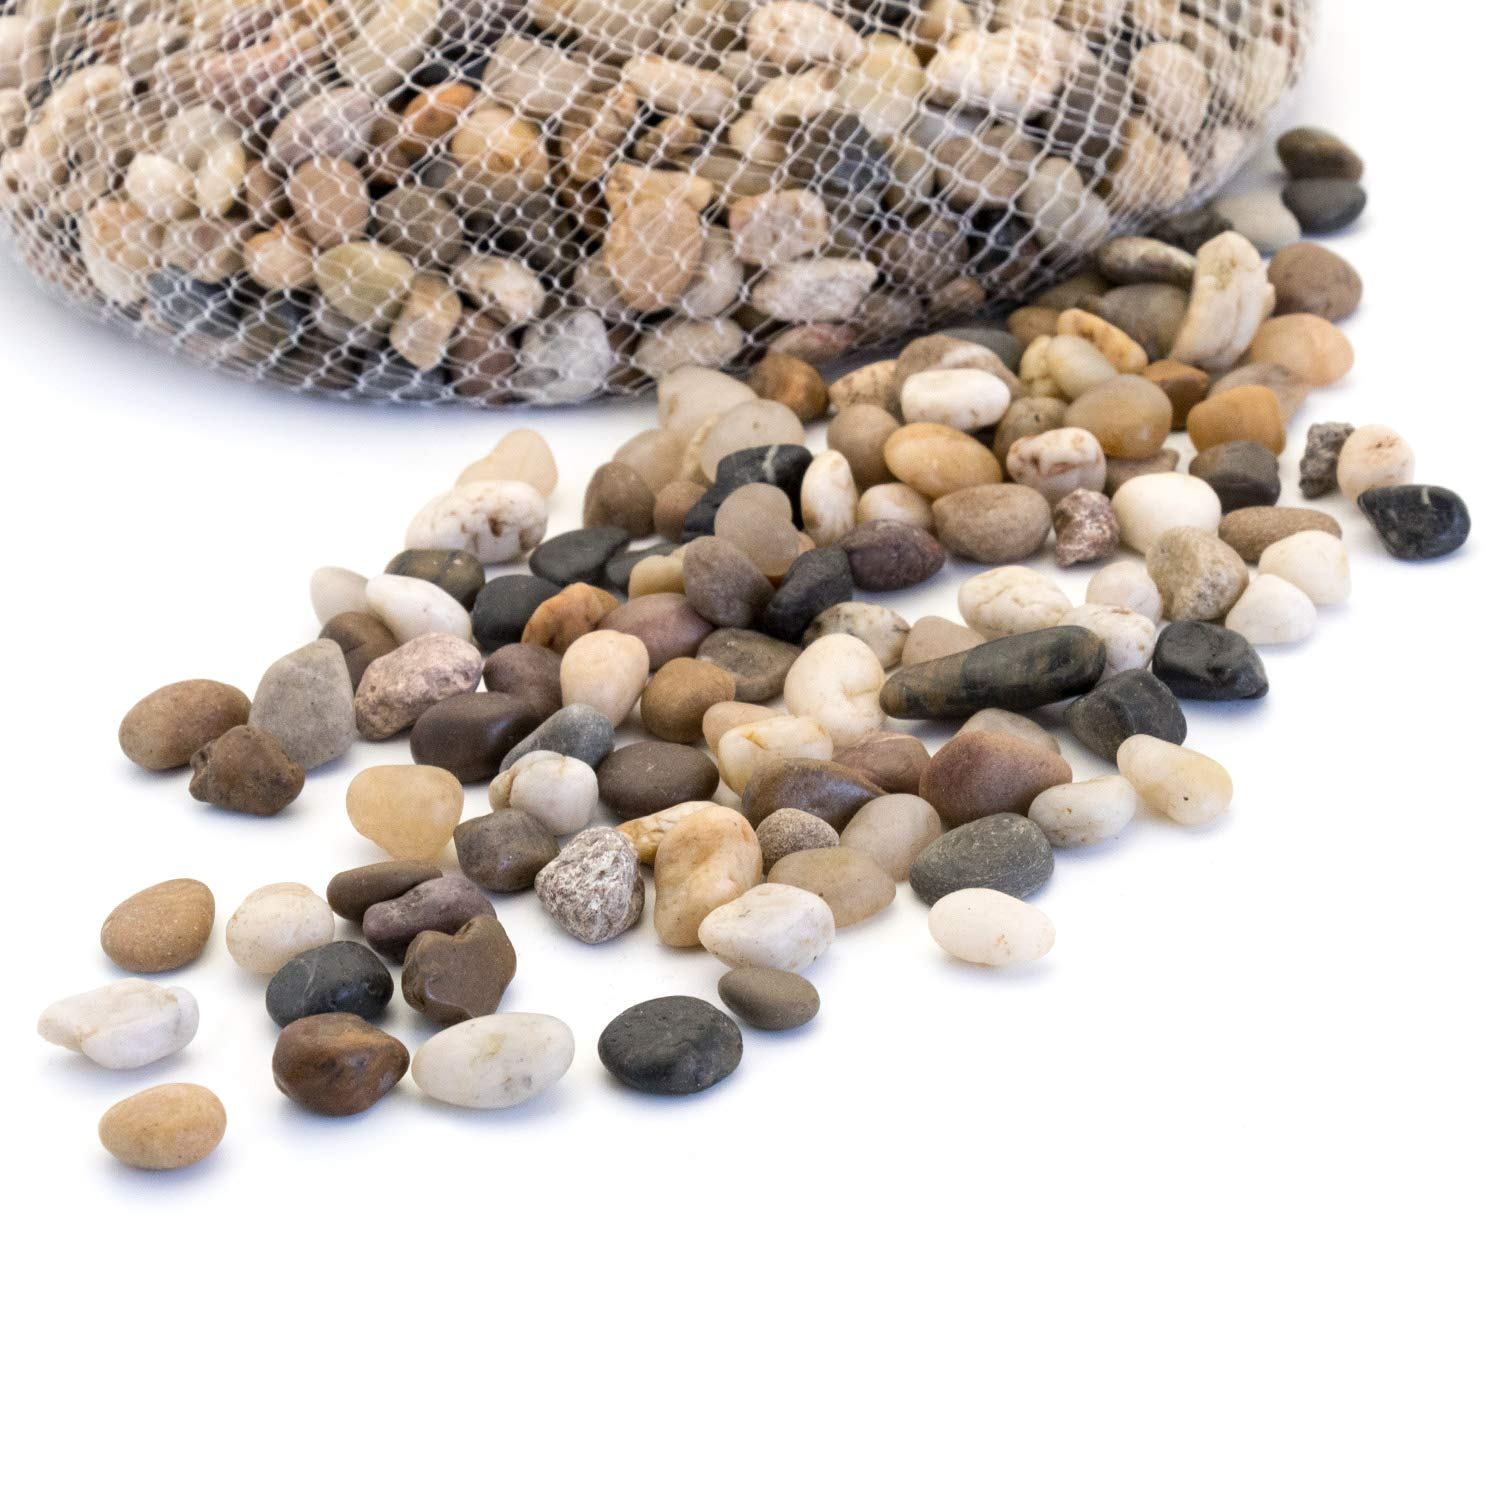 Royal Imports 5lb Small Decorative Ornamental River Pebbles Rocks for Fresh Water Fish Animal Plant Aquariums, Landscaping, Home Decor etc. with Netted Bag, Natural